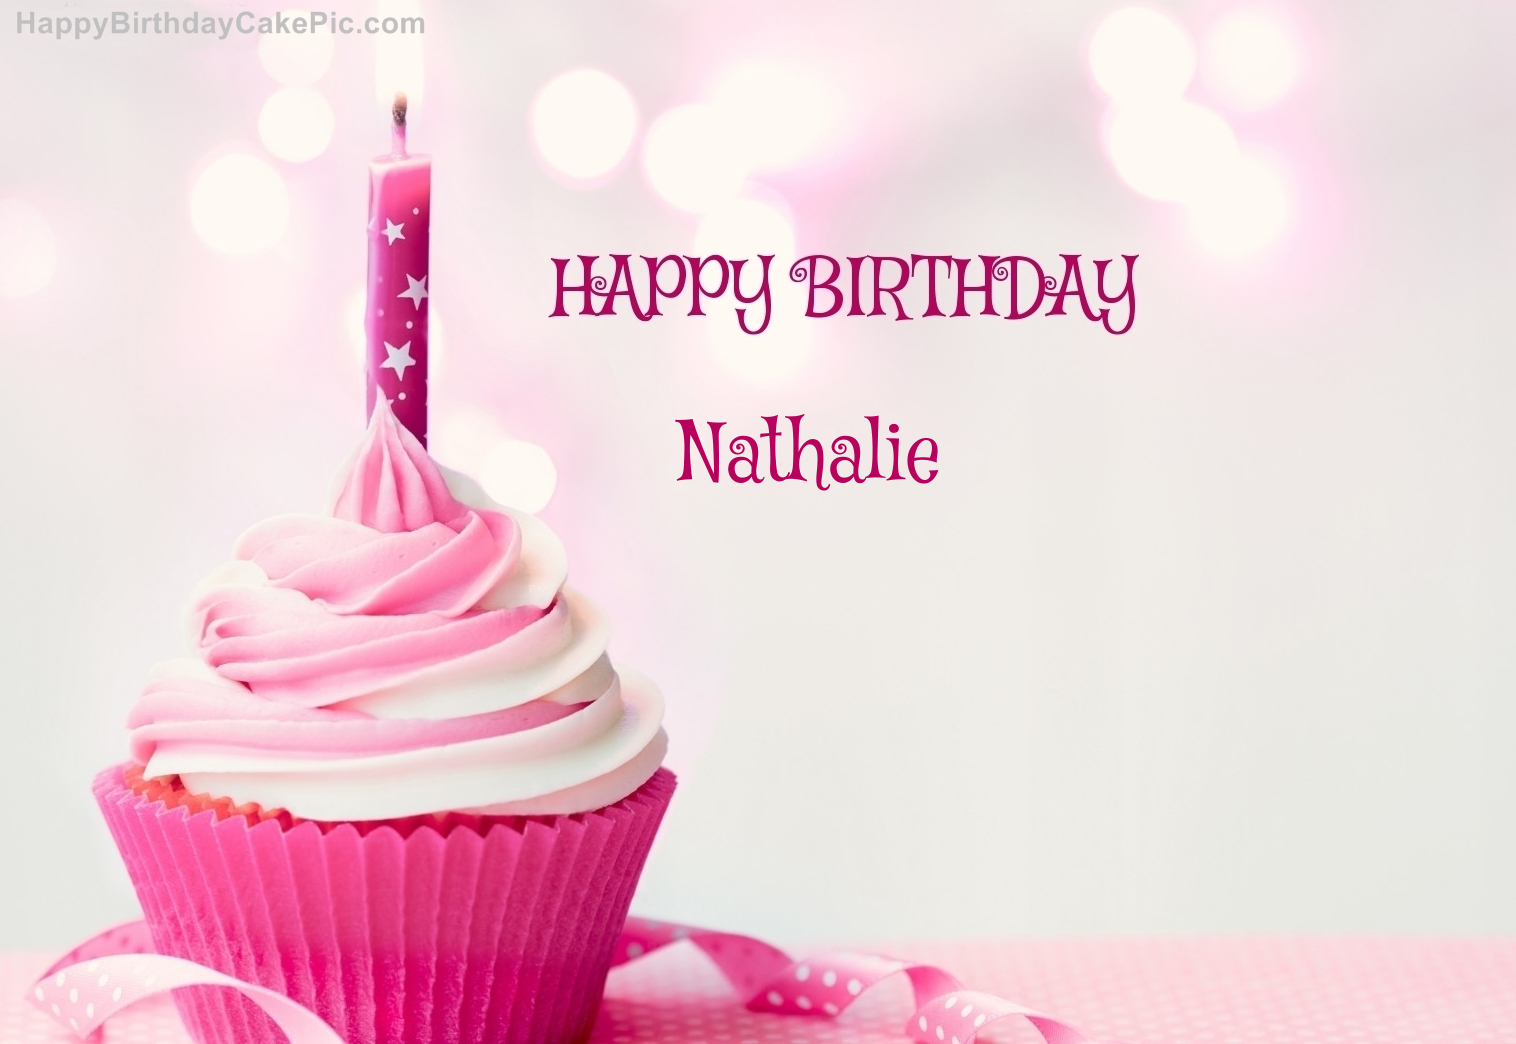 Happy Birthday Cupcake Candle Pink Cake For Nathalie